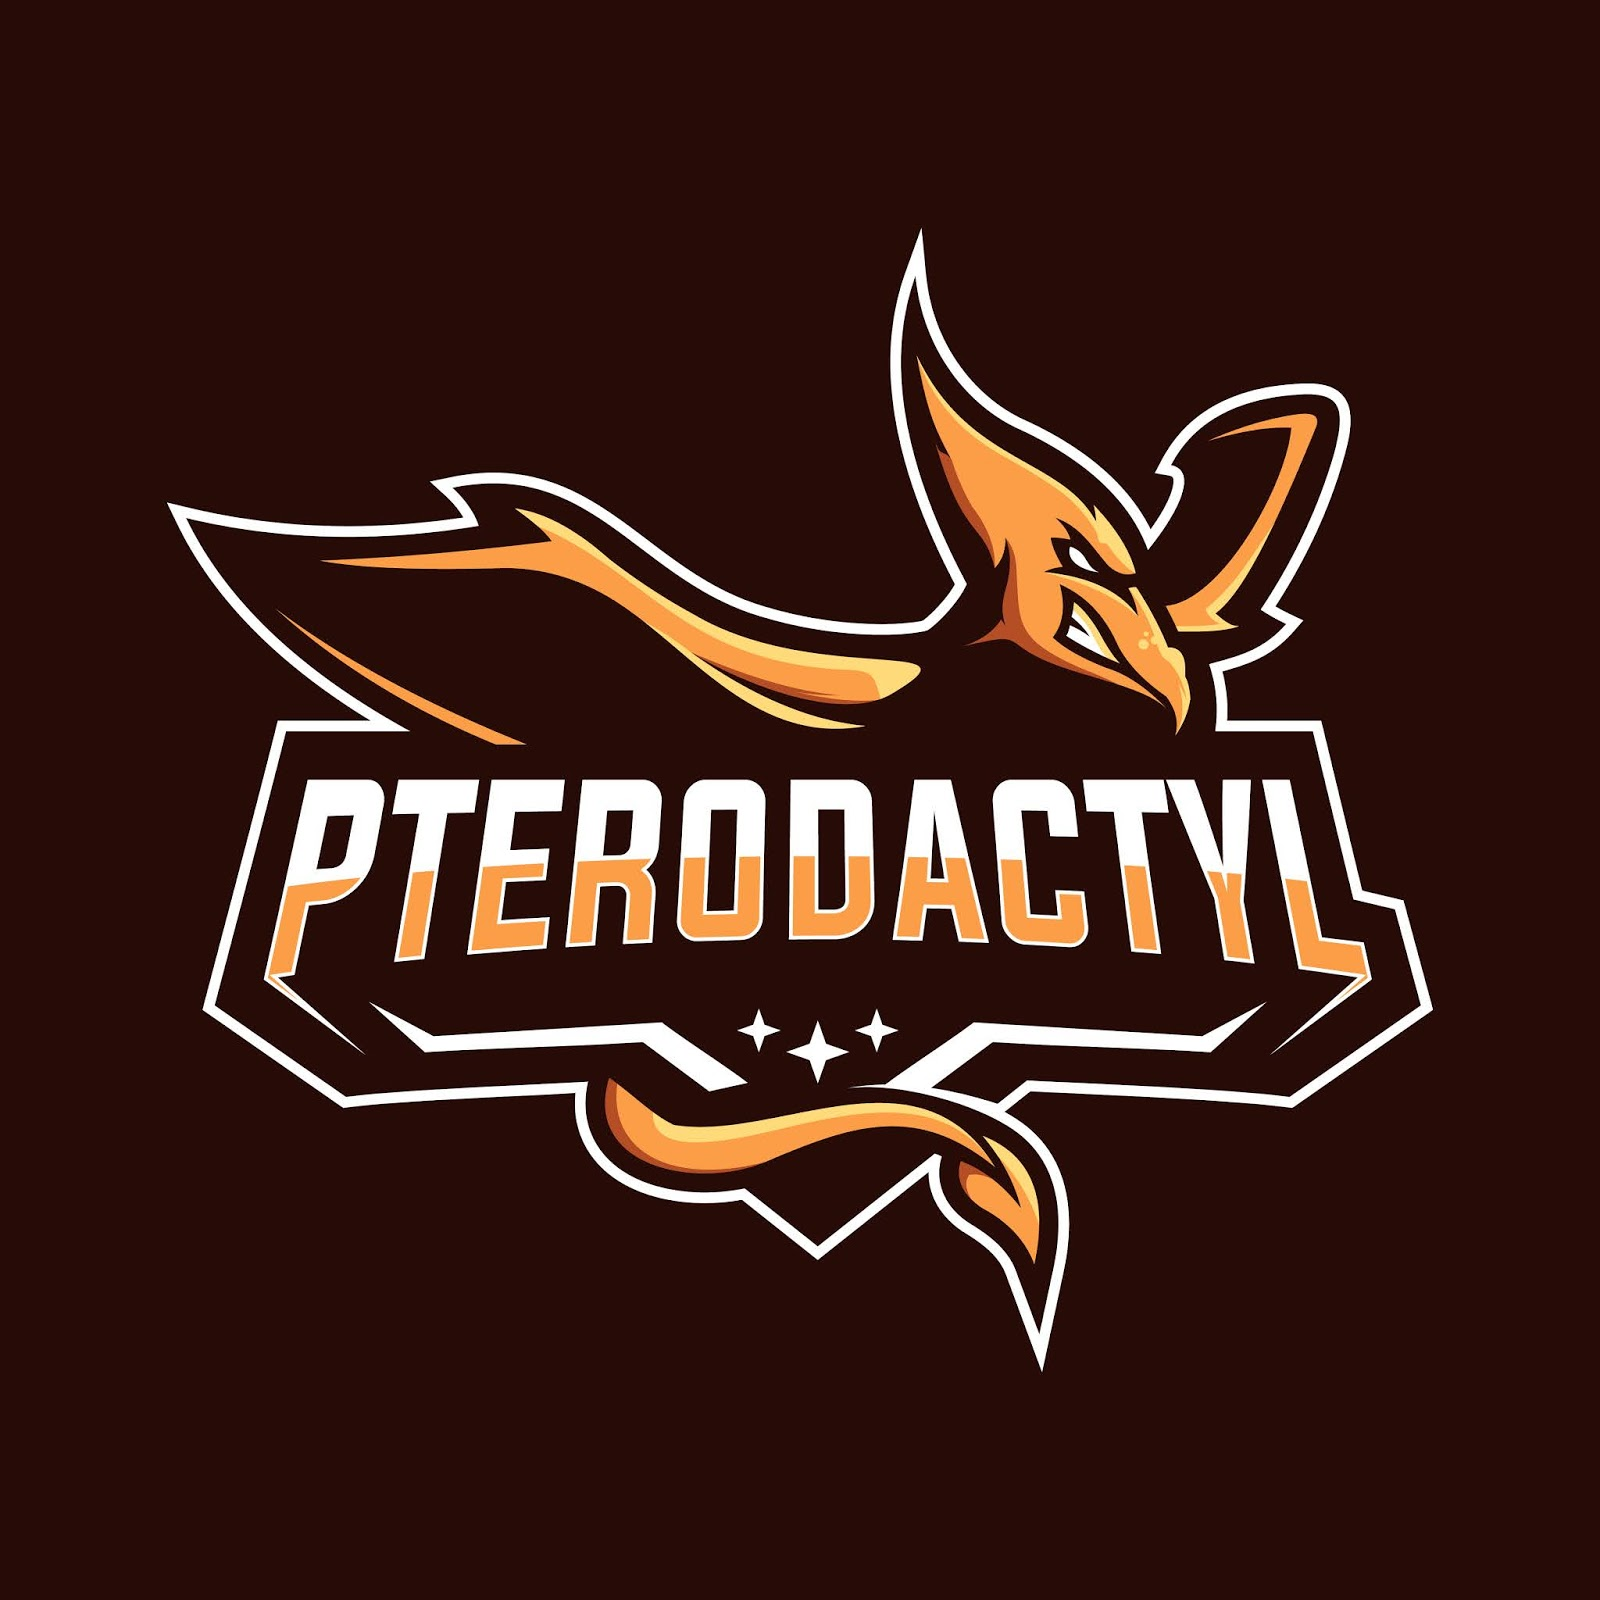 Pterodactyl Esport Mascot Logo Free Download Vector CDR, AI, EPS and PNG Formats